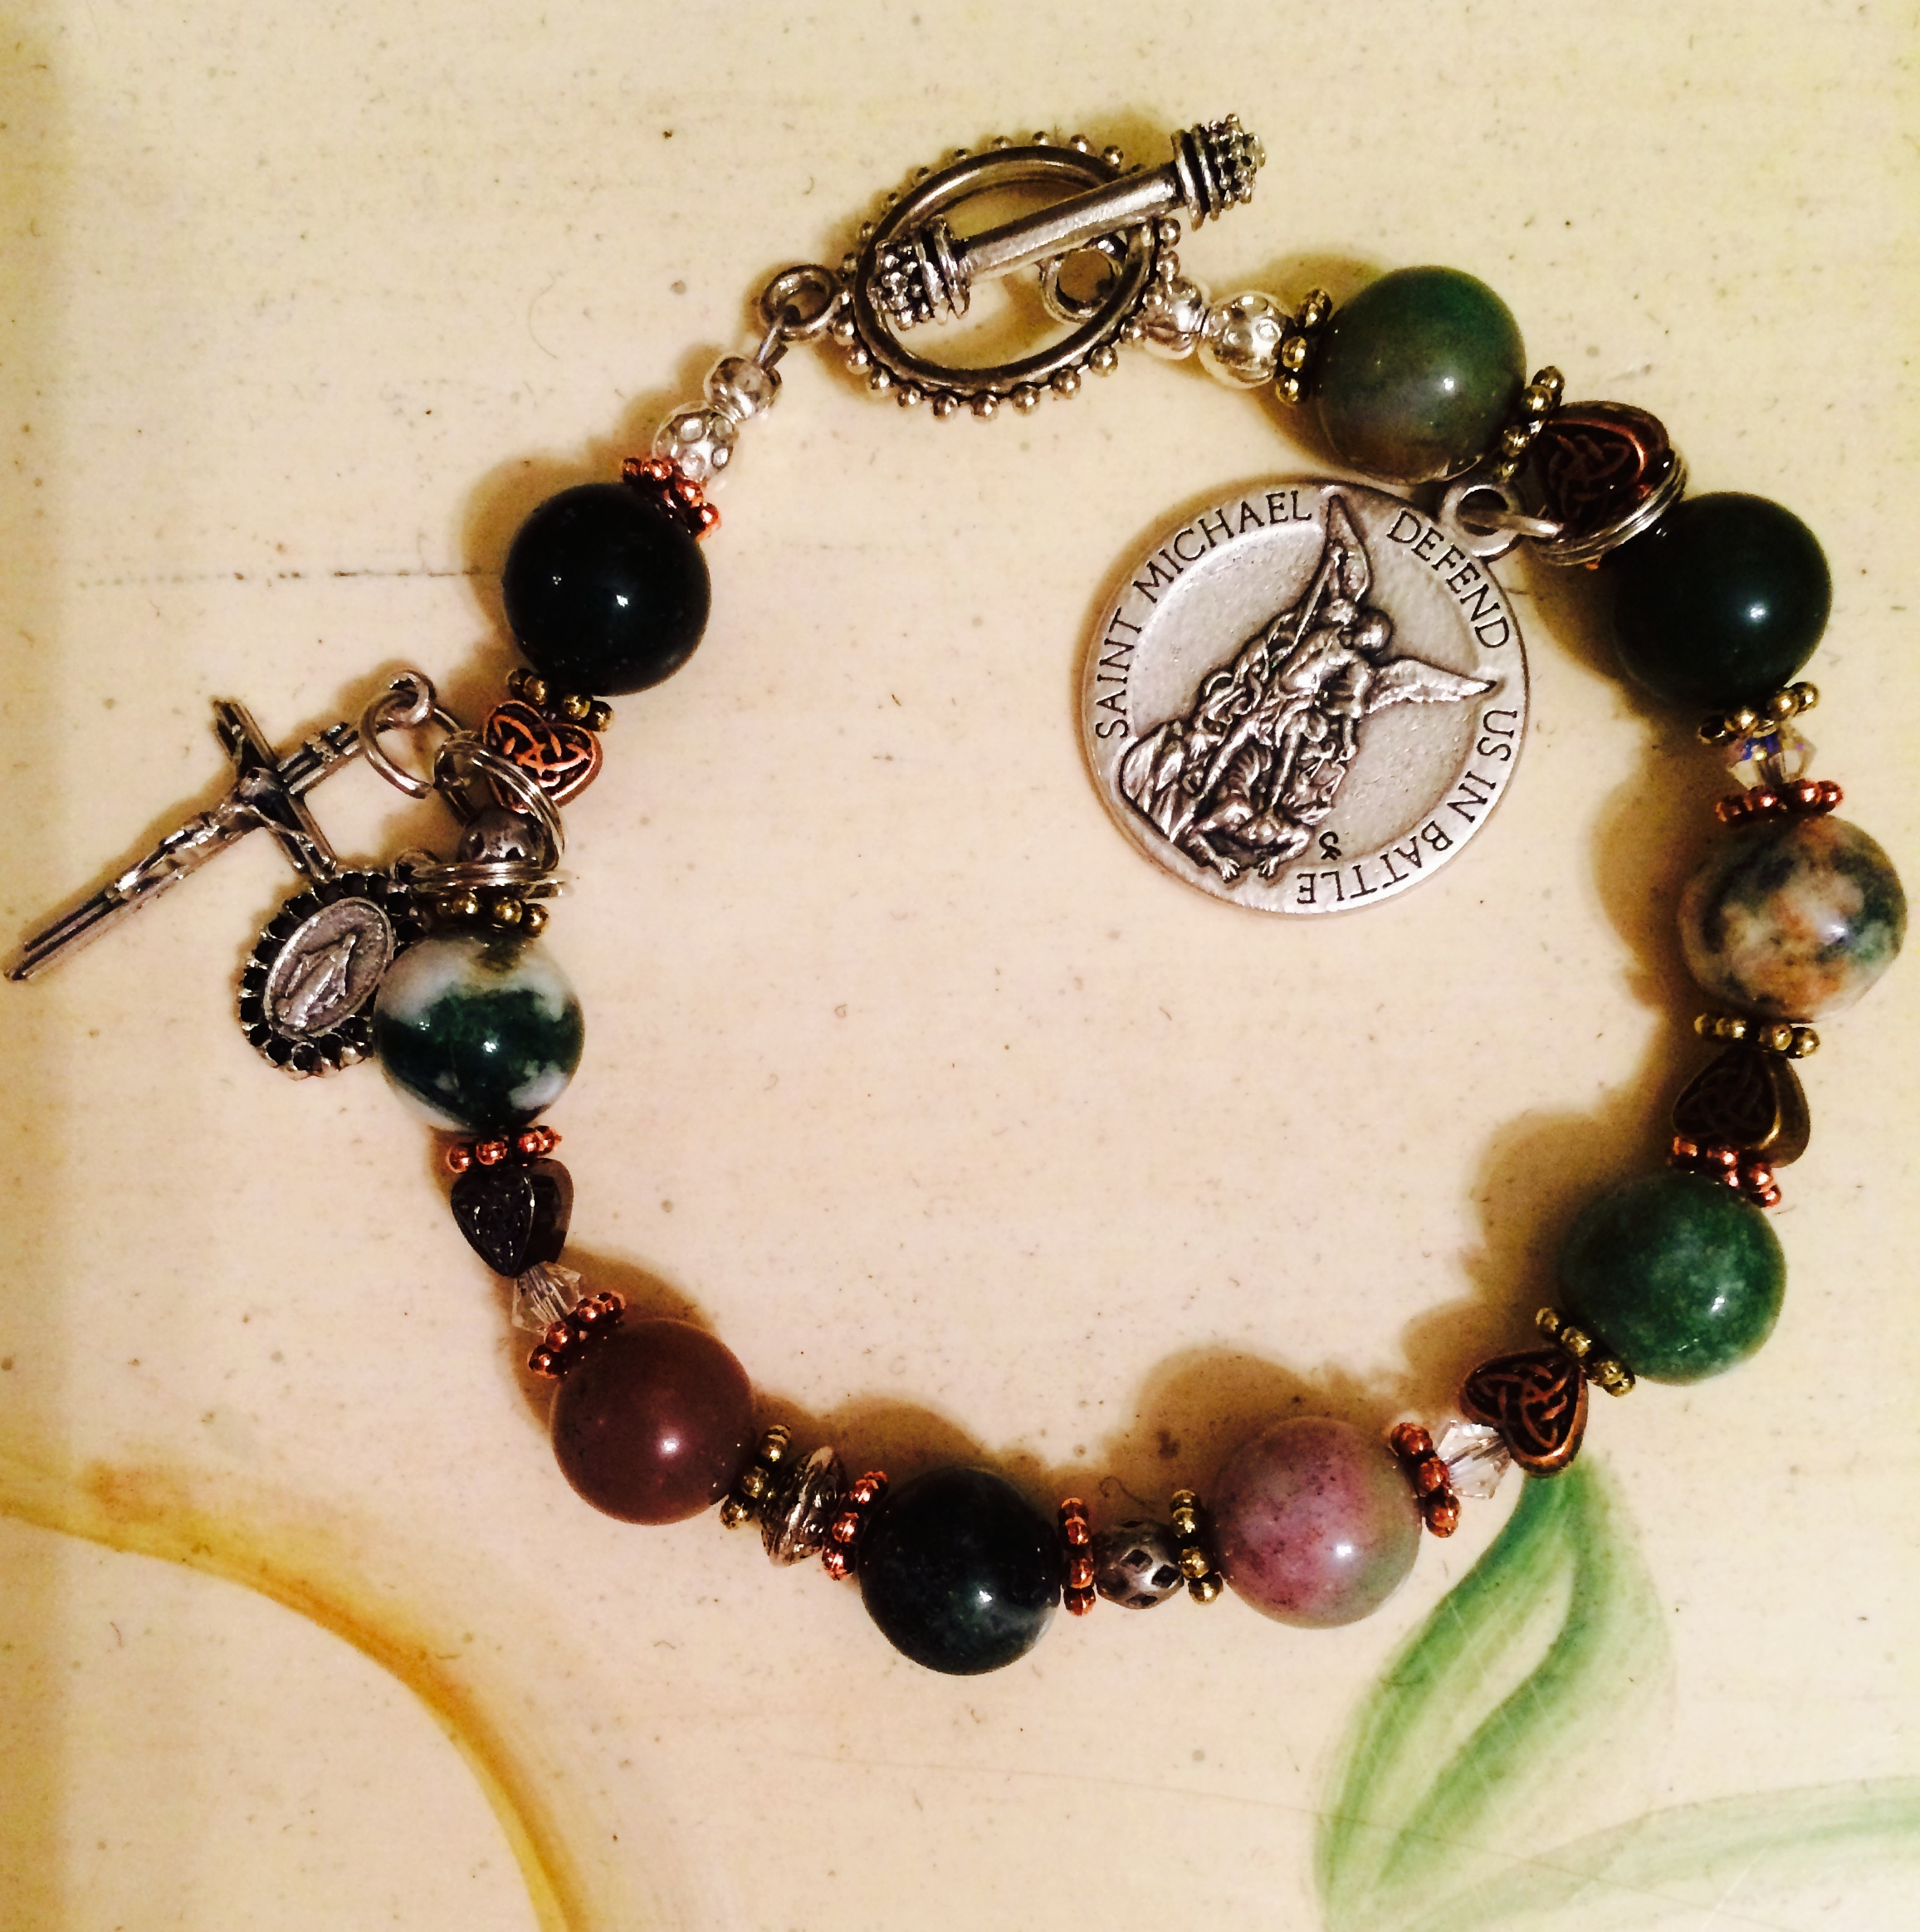 One Military Novena Prayer Bracelet 4 Which Is For 39 99